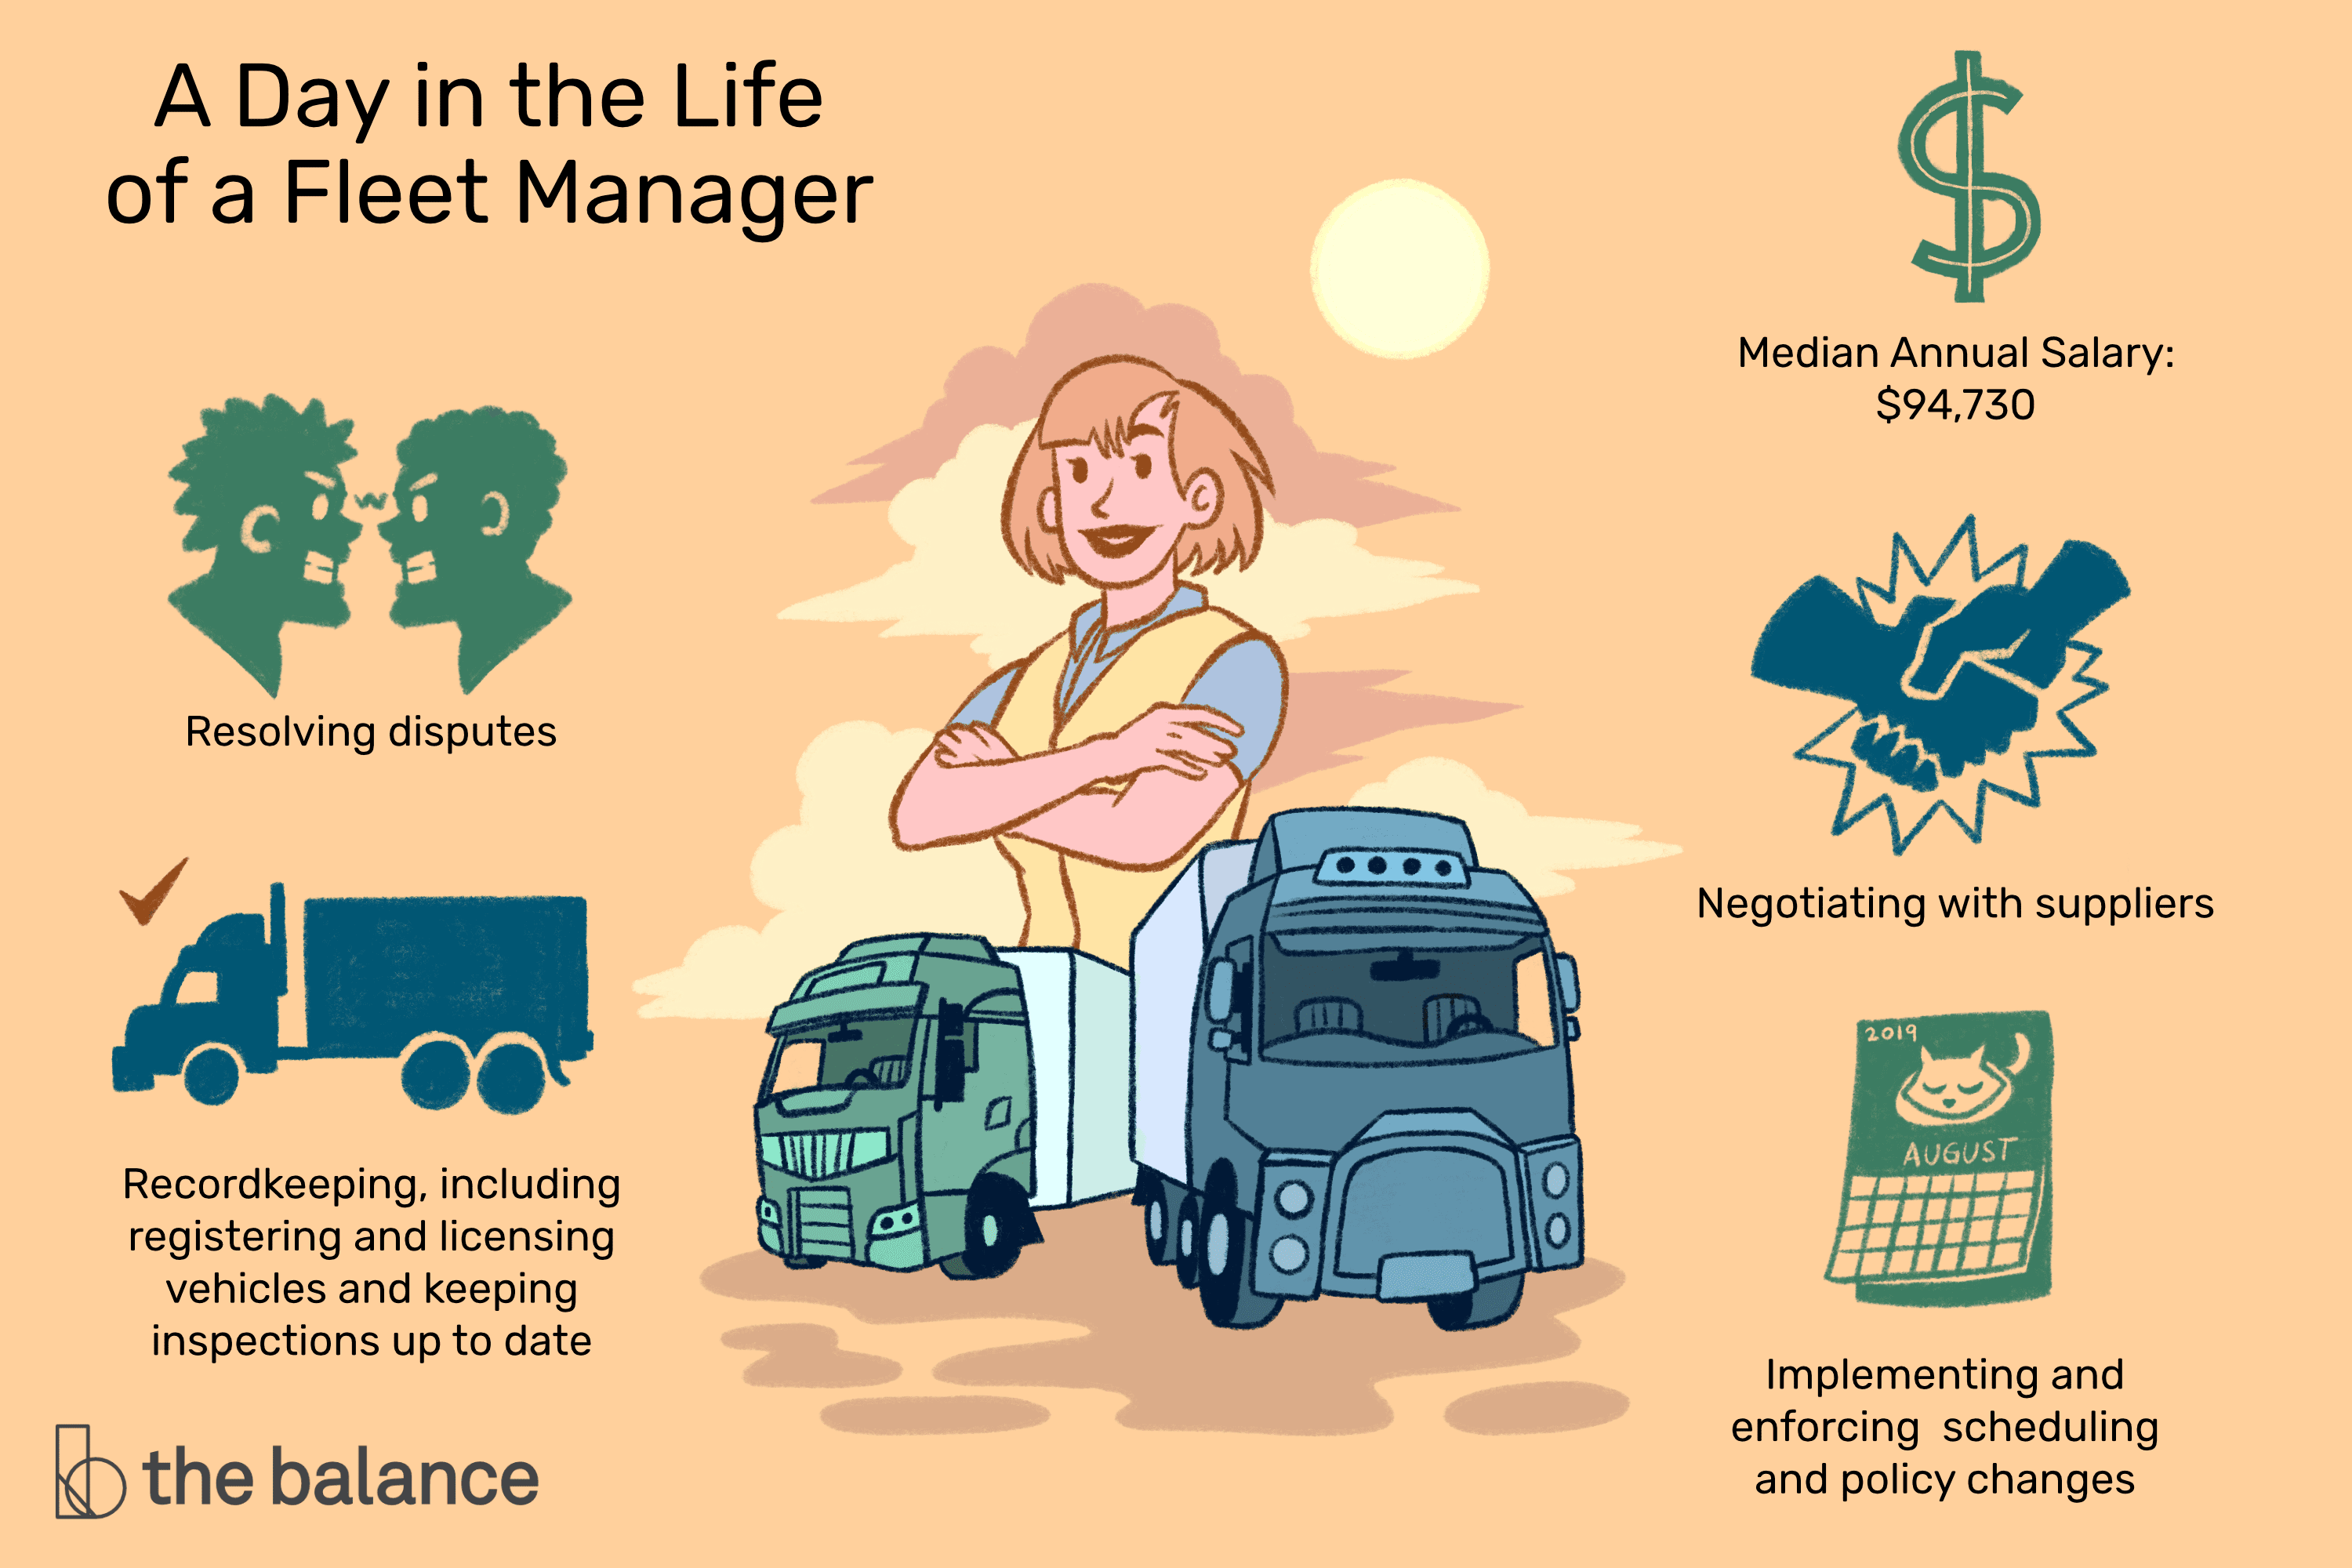 Fleet Manager Job Description Salary Skills More